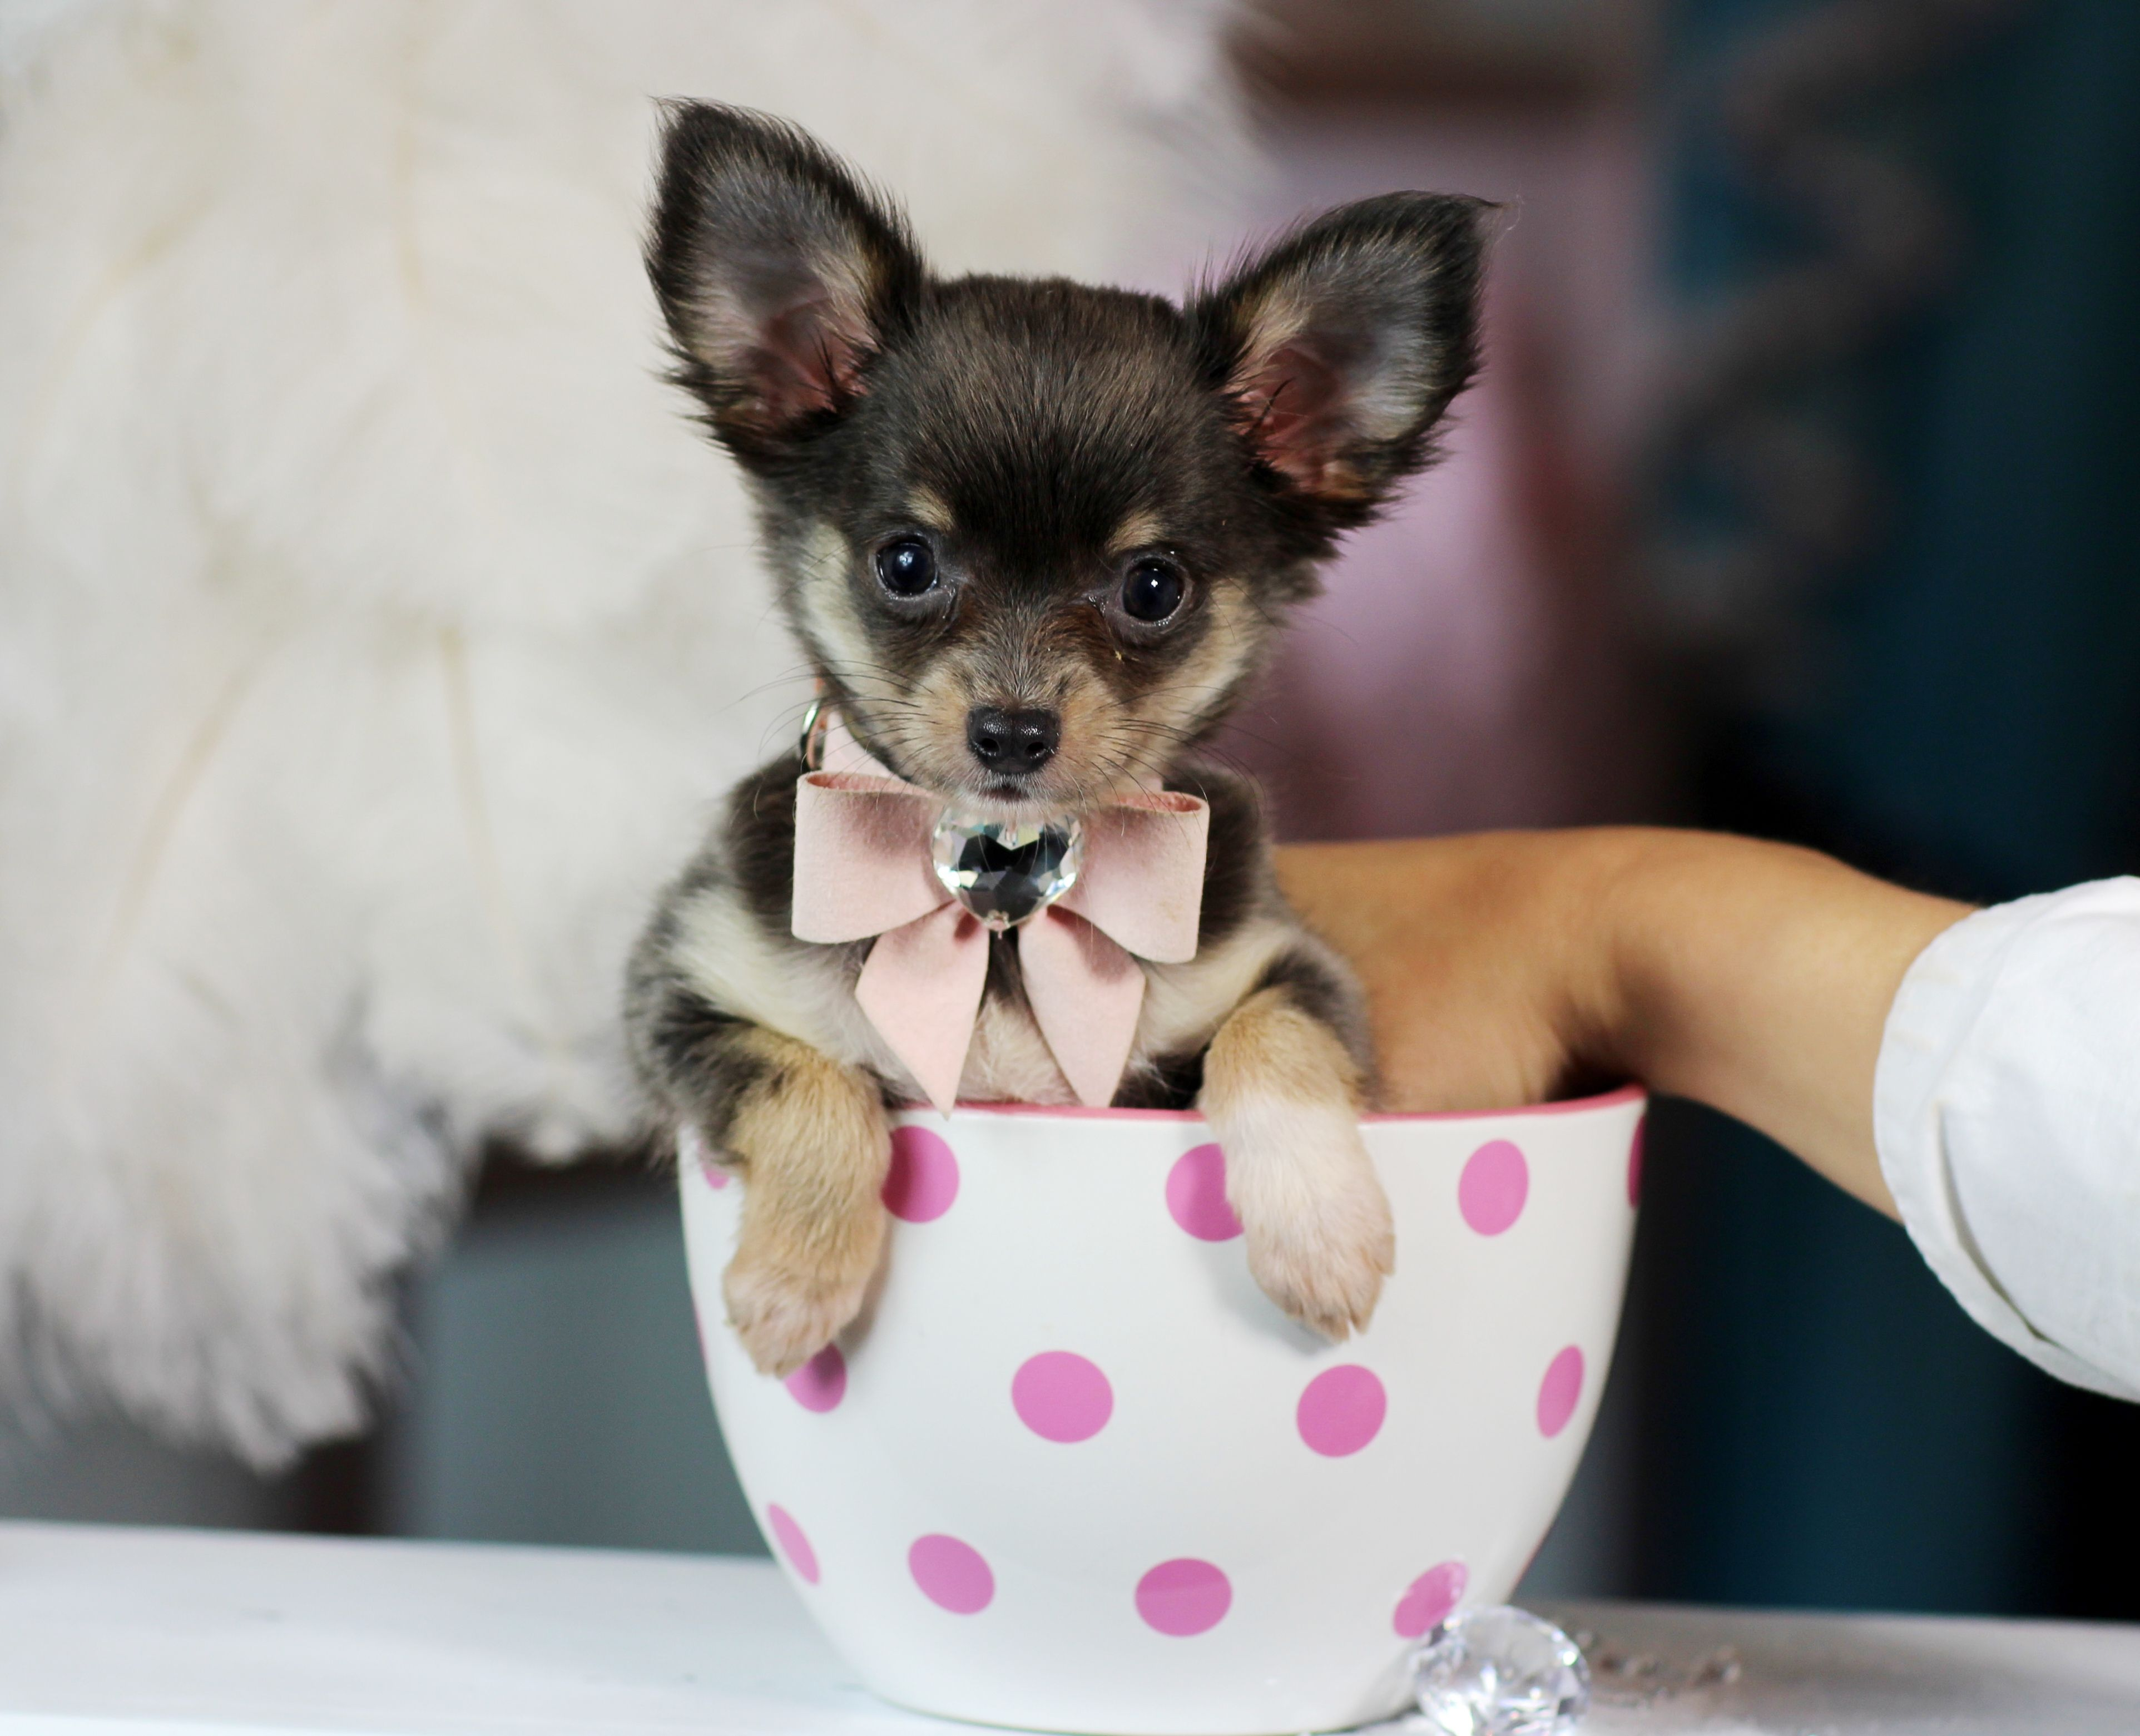 ♥♥♥ Teacup Chihuahua ♥♥♥ Bring This Perfect Baby Home Today